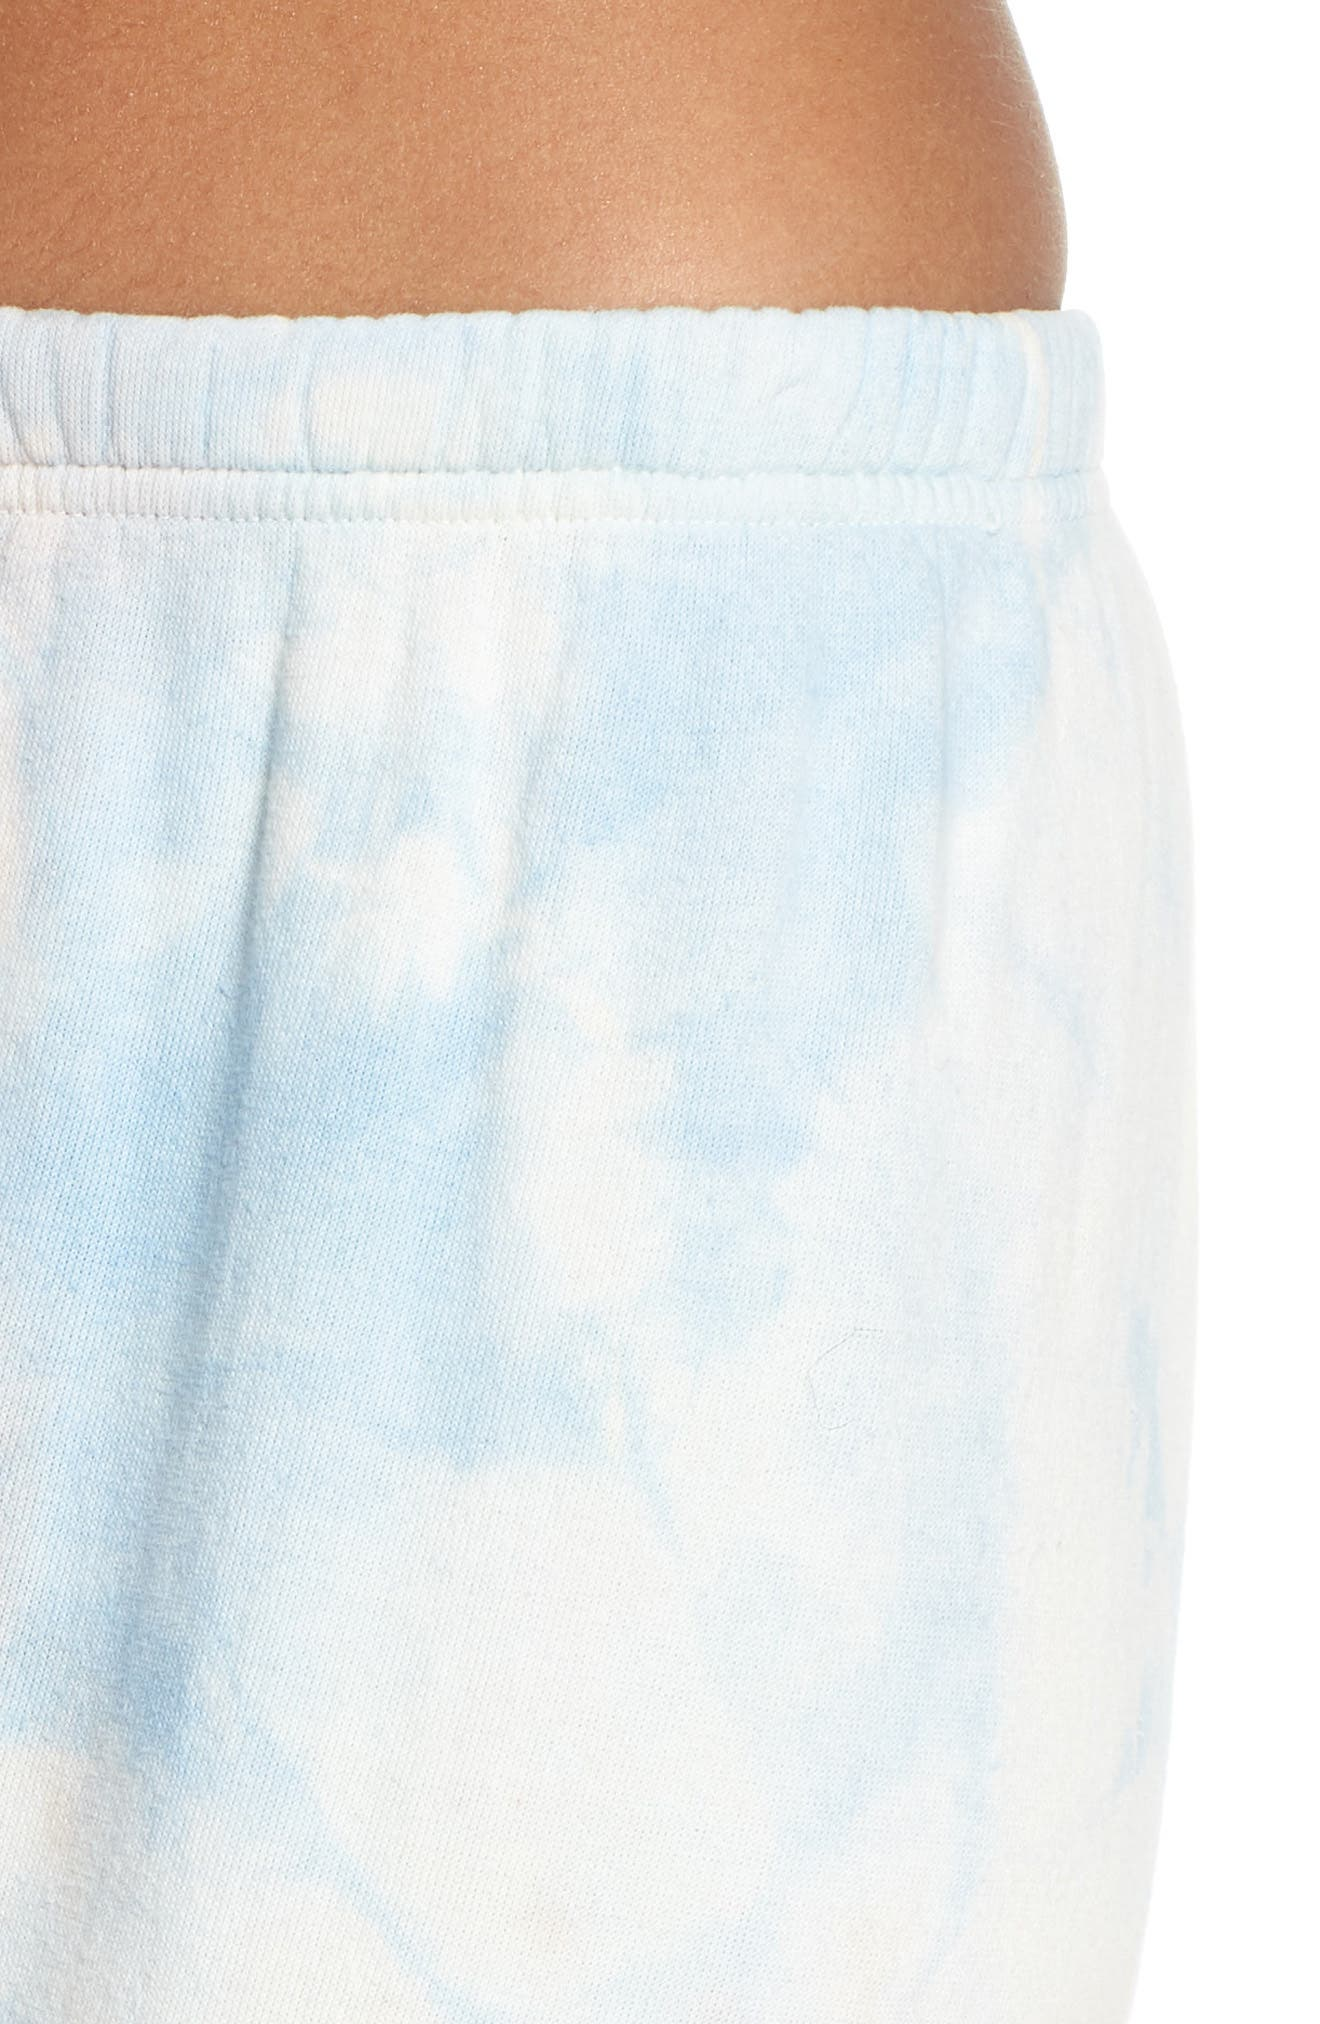 Sessions Sweatpants,                             Alternate thumbnail 4, color,                             MINT TIE DYE